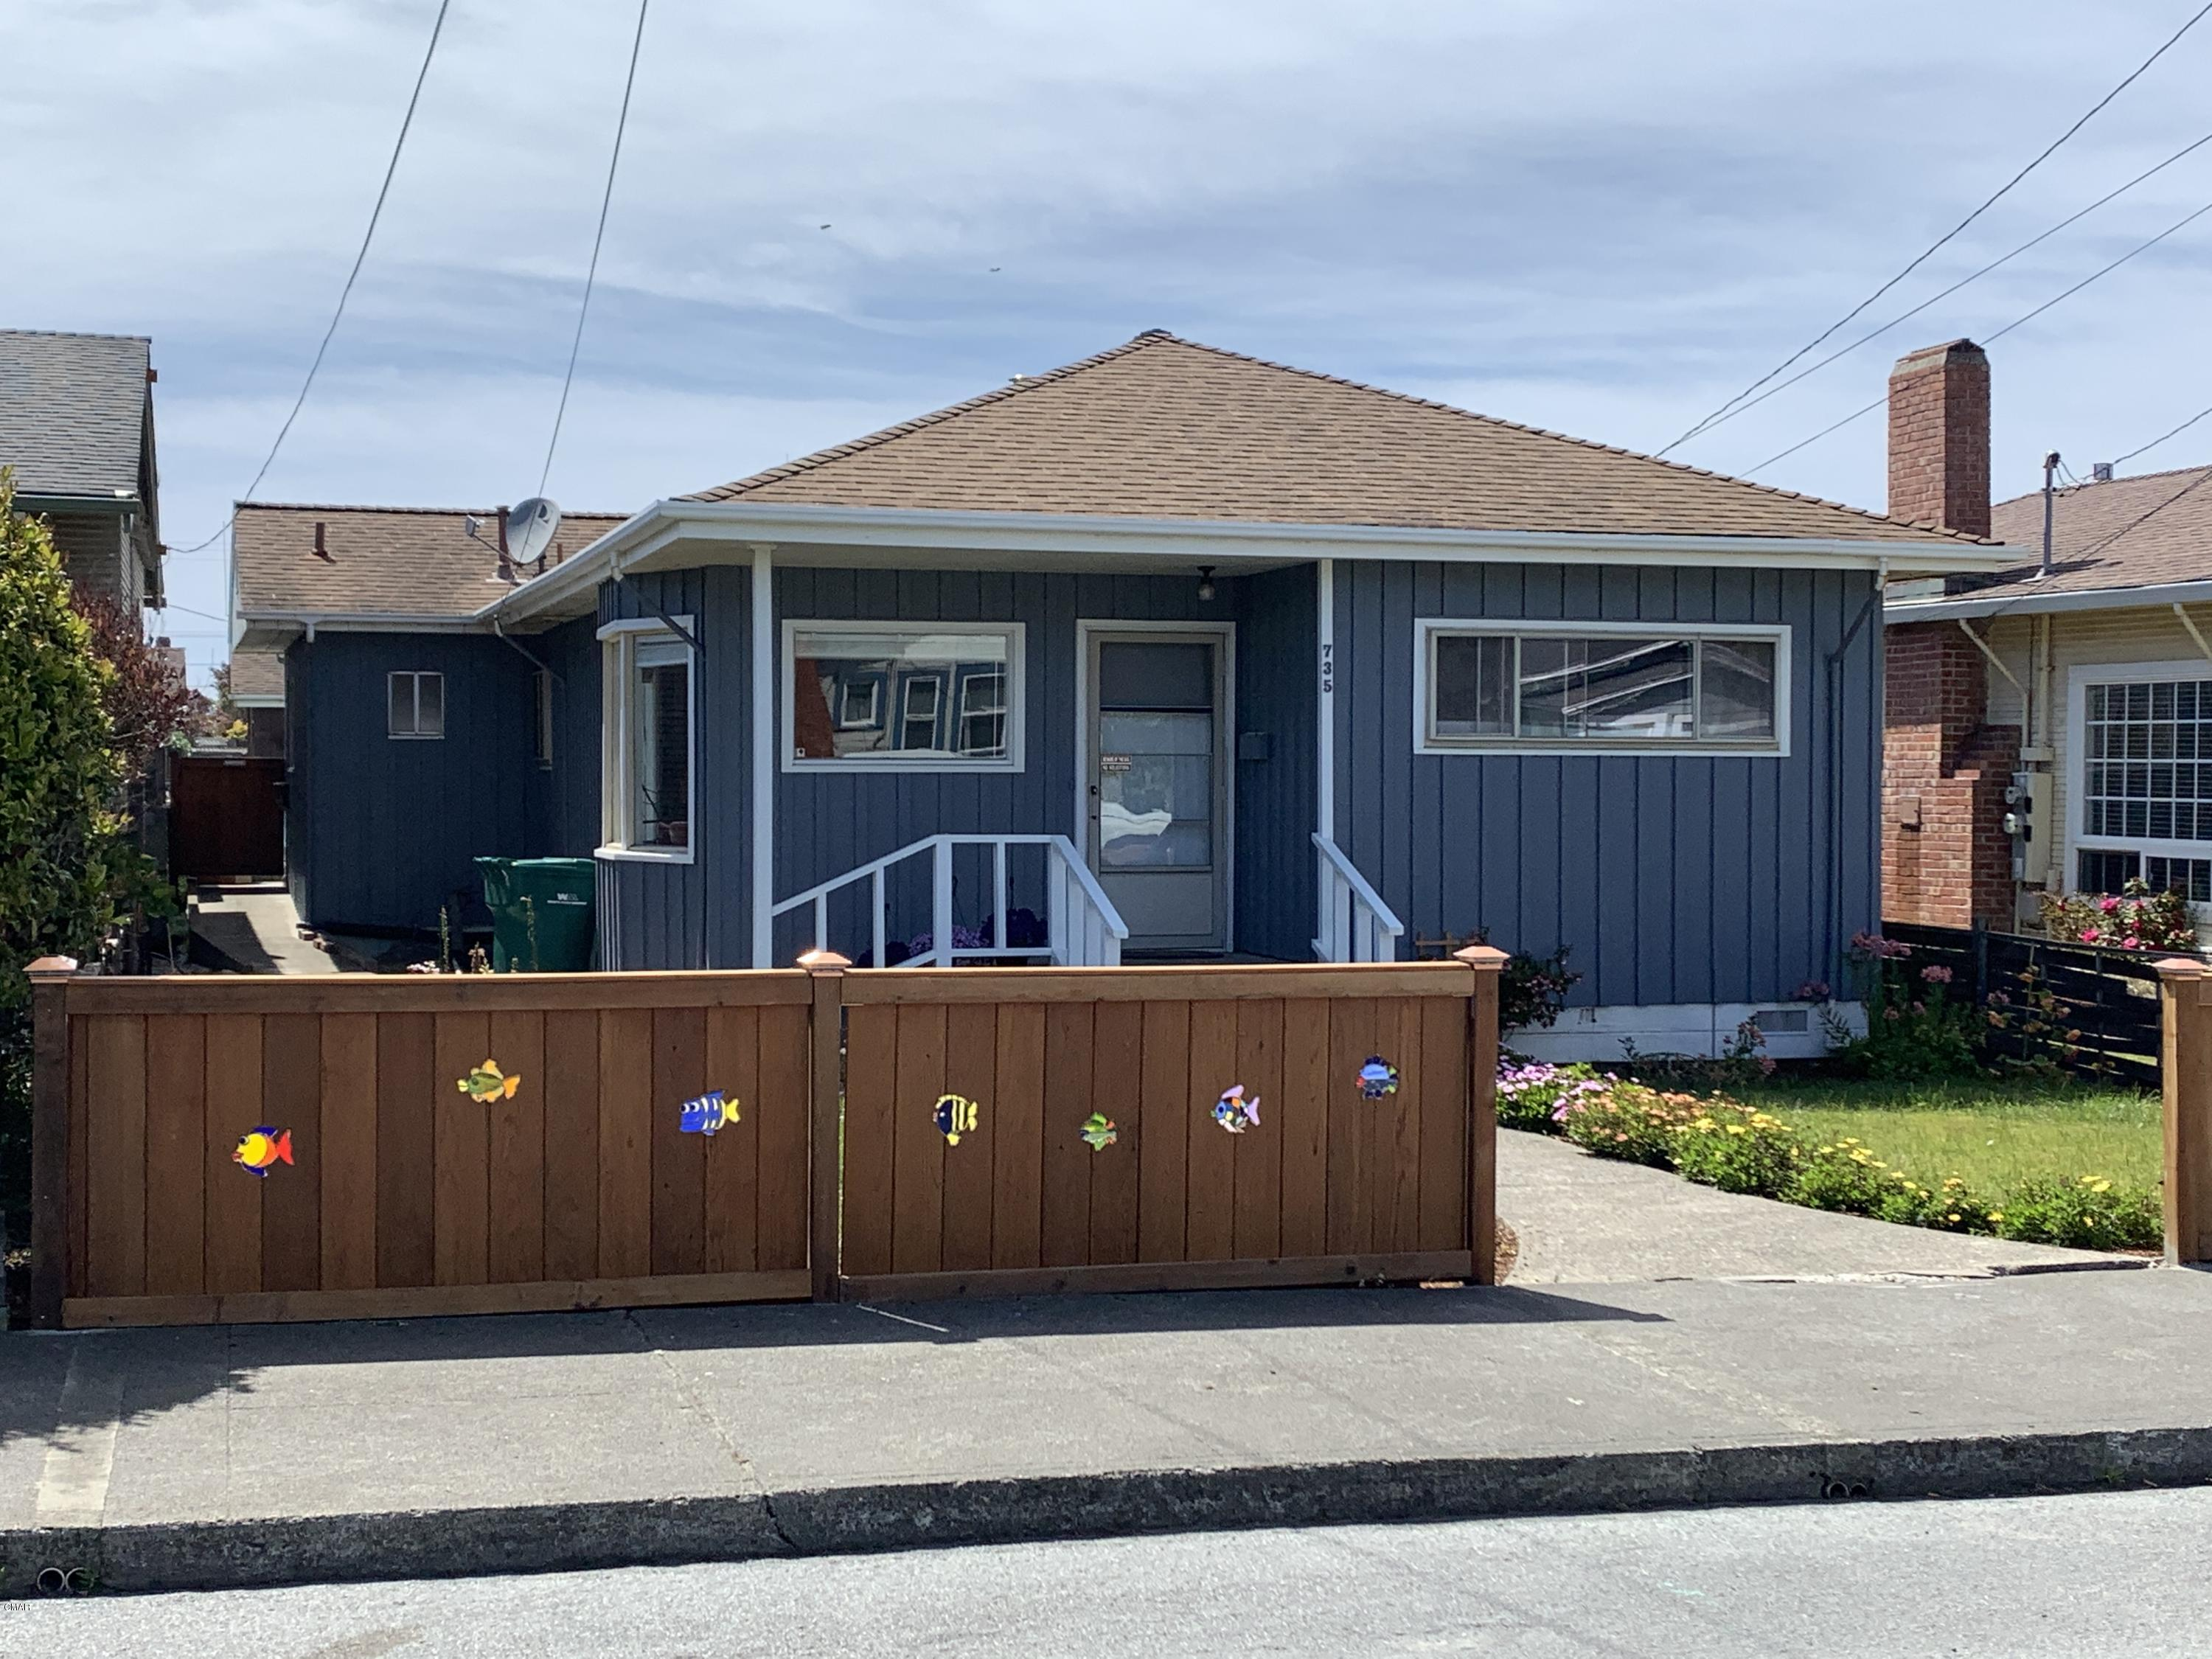 Charming Coastal Cottage, walk to beach or downtown. 3 Bedrooms with good separation, skylights, recent updates throughout. Separate laundry room, rare and HUGE 3 car garage with alley access. Shop has room for cars and your art studio or woodwork, etc. Unique front fence embedded with stained glass fish. Seller is a licensed real estate broker.